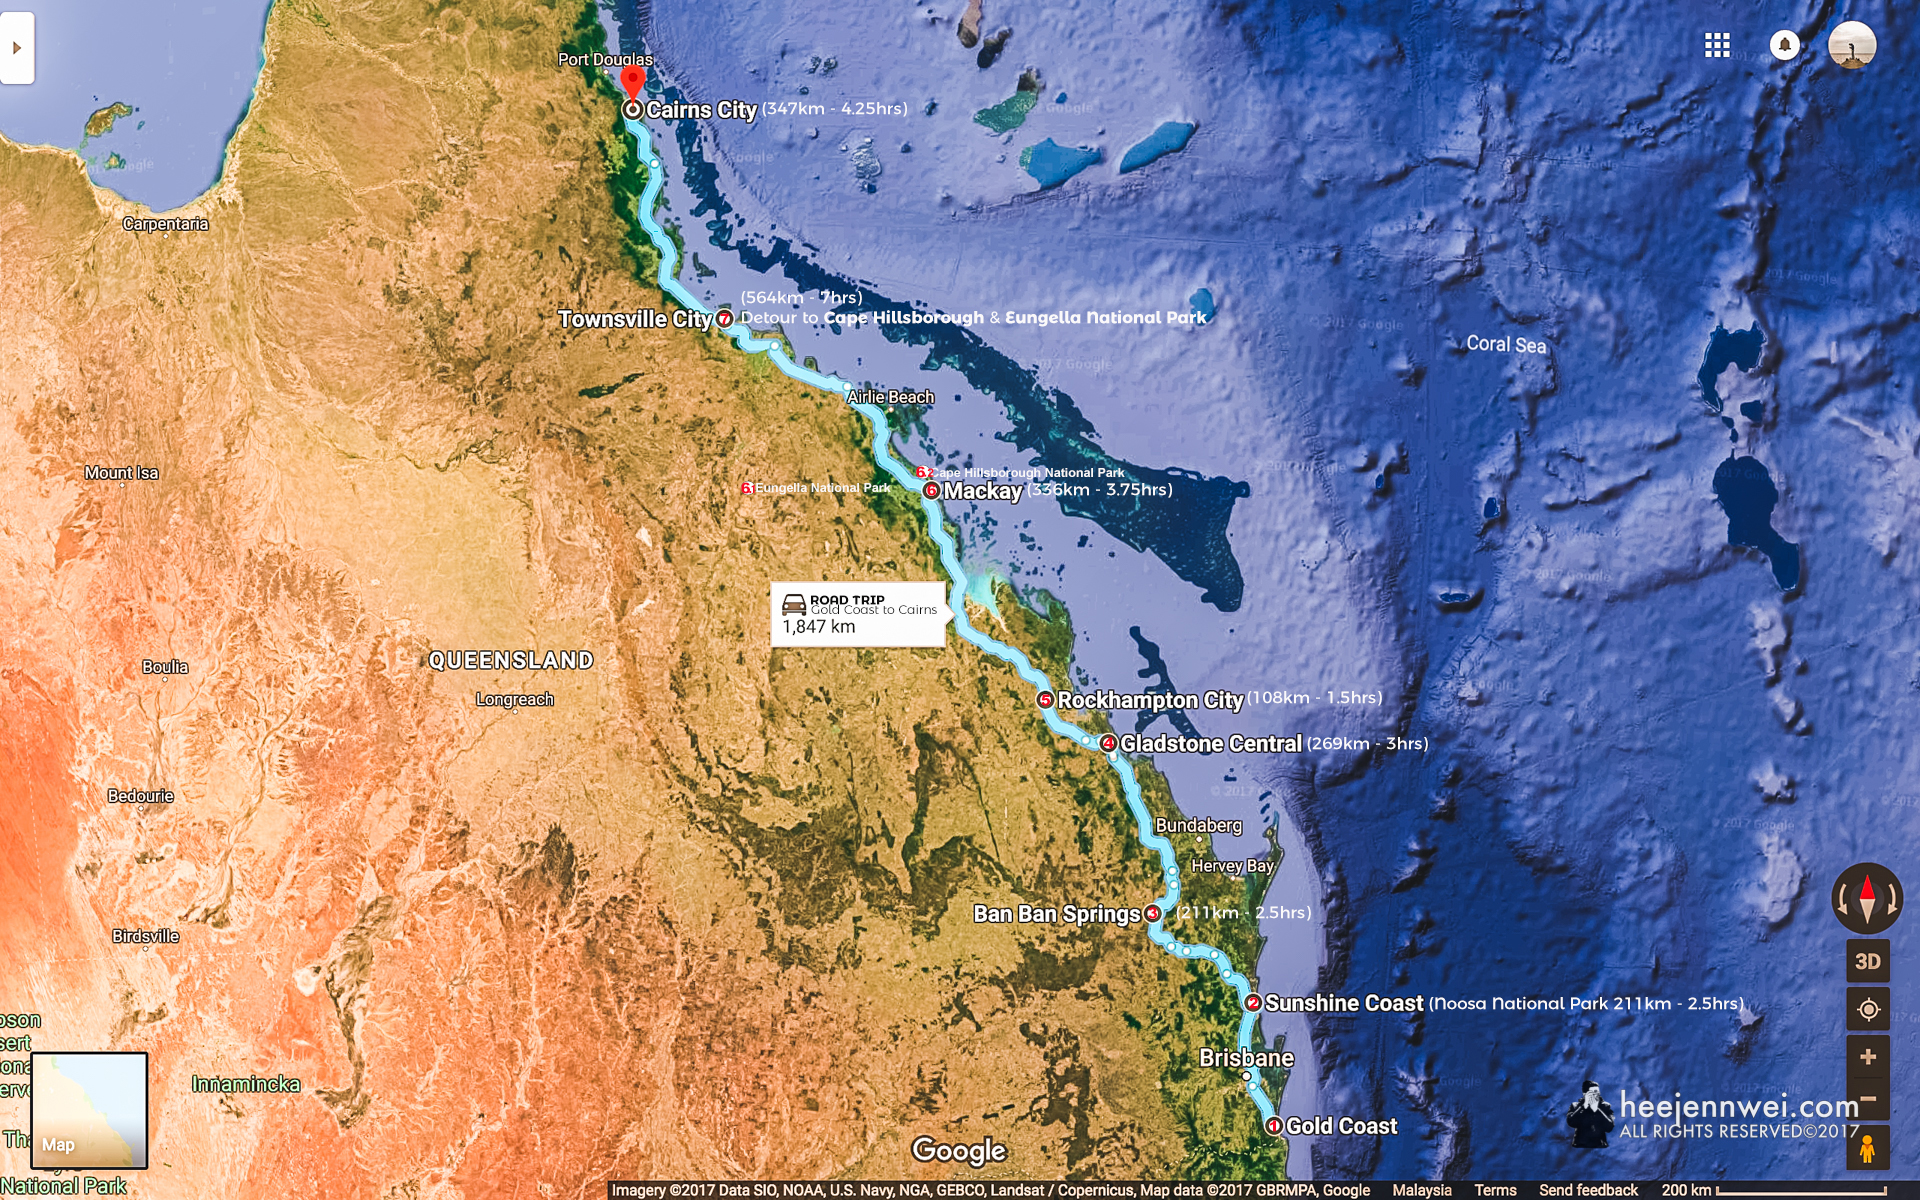 A 10 days (2,022km) road trip from Gold Coast to the Great Barrier Reef (Cairns City); with JetStar flight from Cairns back to Gold Coast.